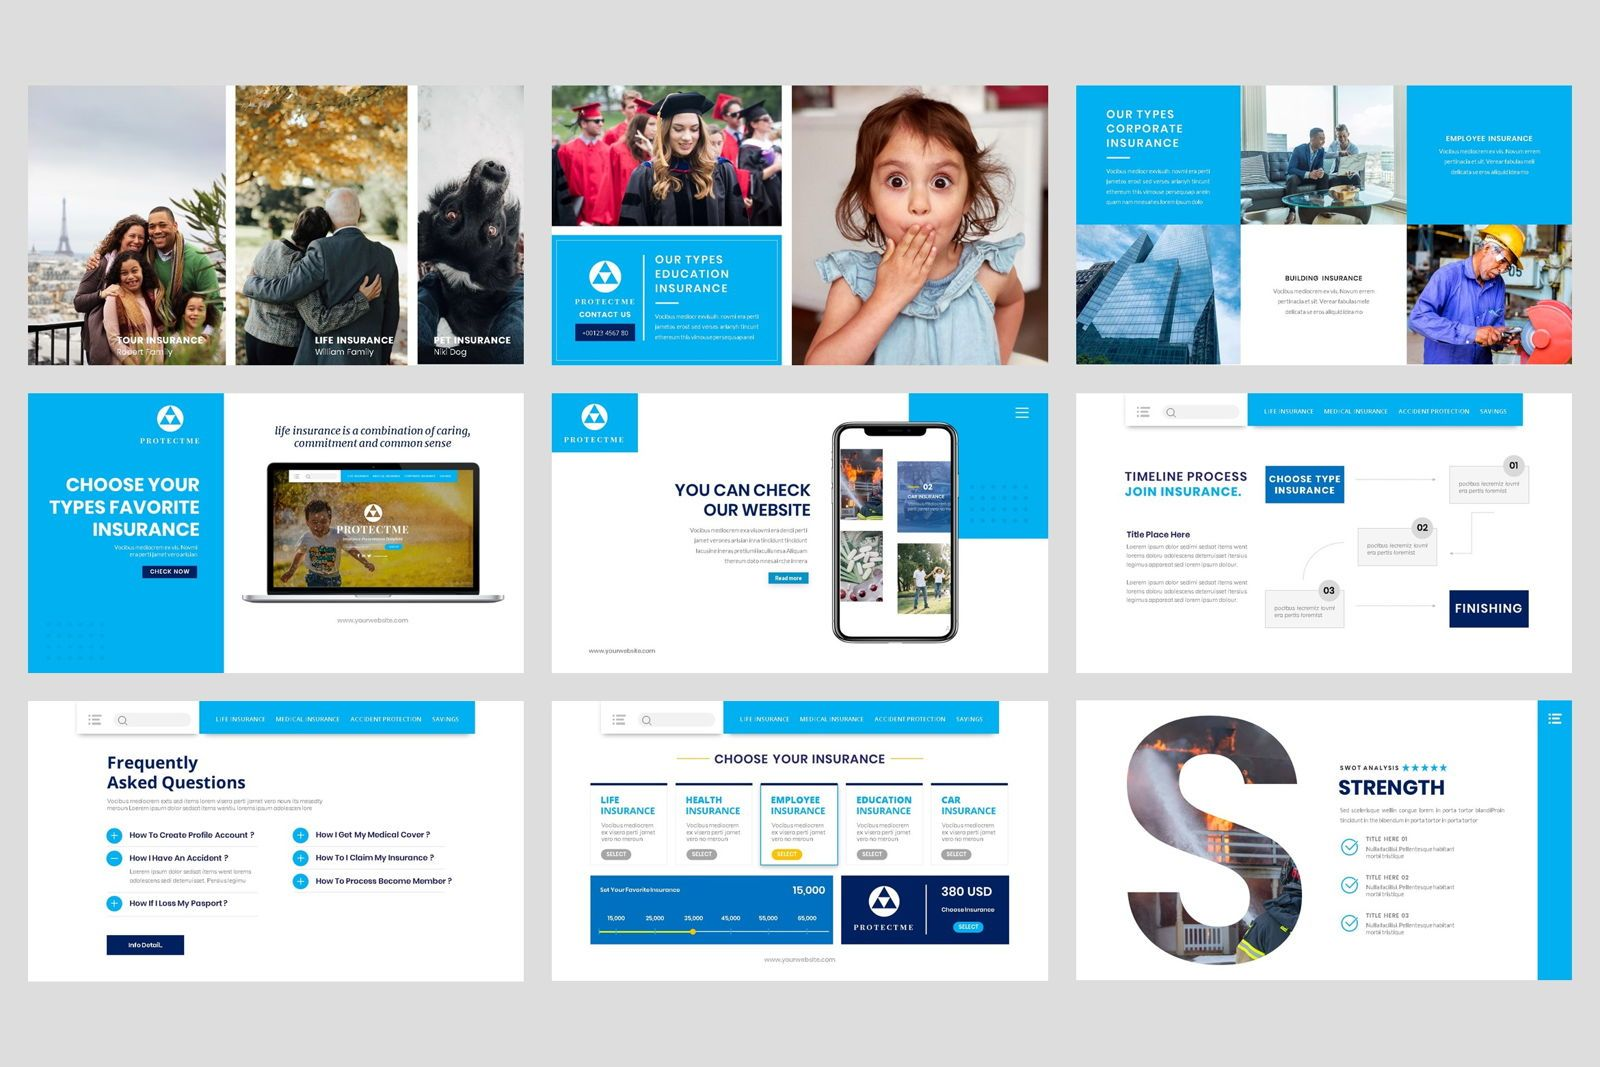 Insurance - Business Consultant PowerPoint Template, Slide 4, 08604, Presentation Templates — PoweredTemplate.com